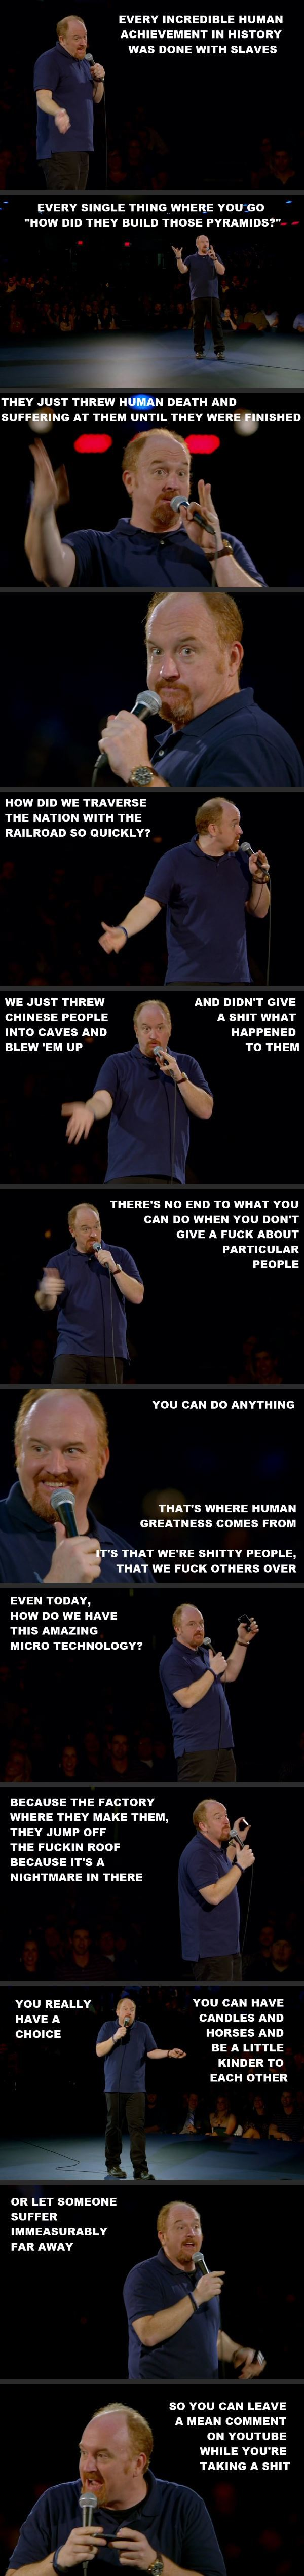 Louis CK Quotes Human Nature